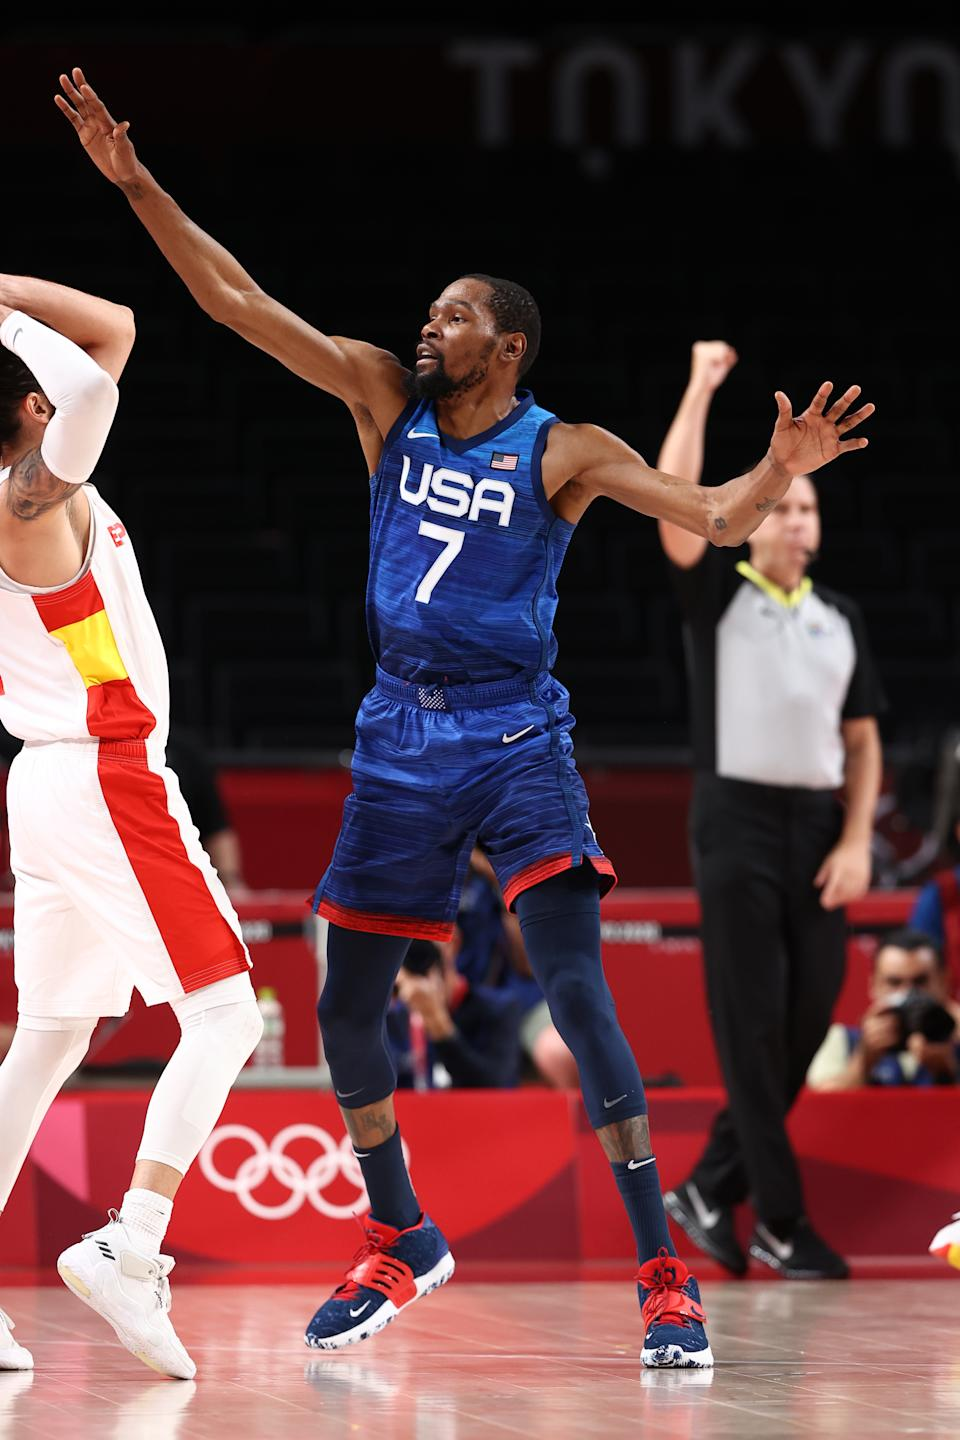 <p>TOKYO, JAPAN - AUGUST 3: Kevin Durant #7 of the USA Men's National Team plays defense during the game against the Spain Men's National Team during the 2020 Tokyo Olympics on August 3, 2021 at the Super Saitama Arena in Tokyo, Japan. NOTE TO USER: User expressly acknowledges and agrees that, by downloading and or using this photograph, user is consenting to the terms and conditions of the Getty Images License Agreement. Mandatory Copyright Notice: Copyright 2021 NBAE (Photo by Stephen Gosling/NBAE via Getty Images)</p>